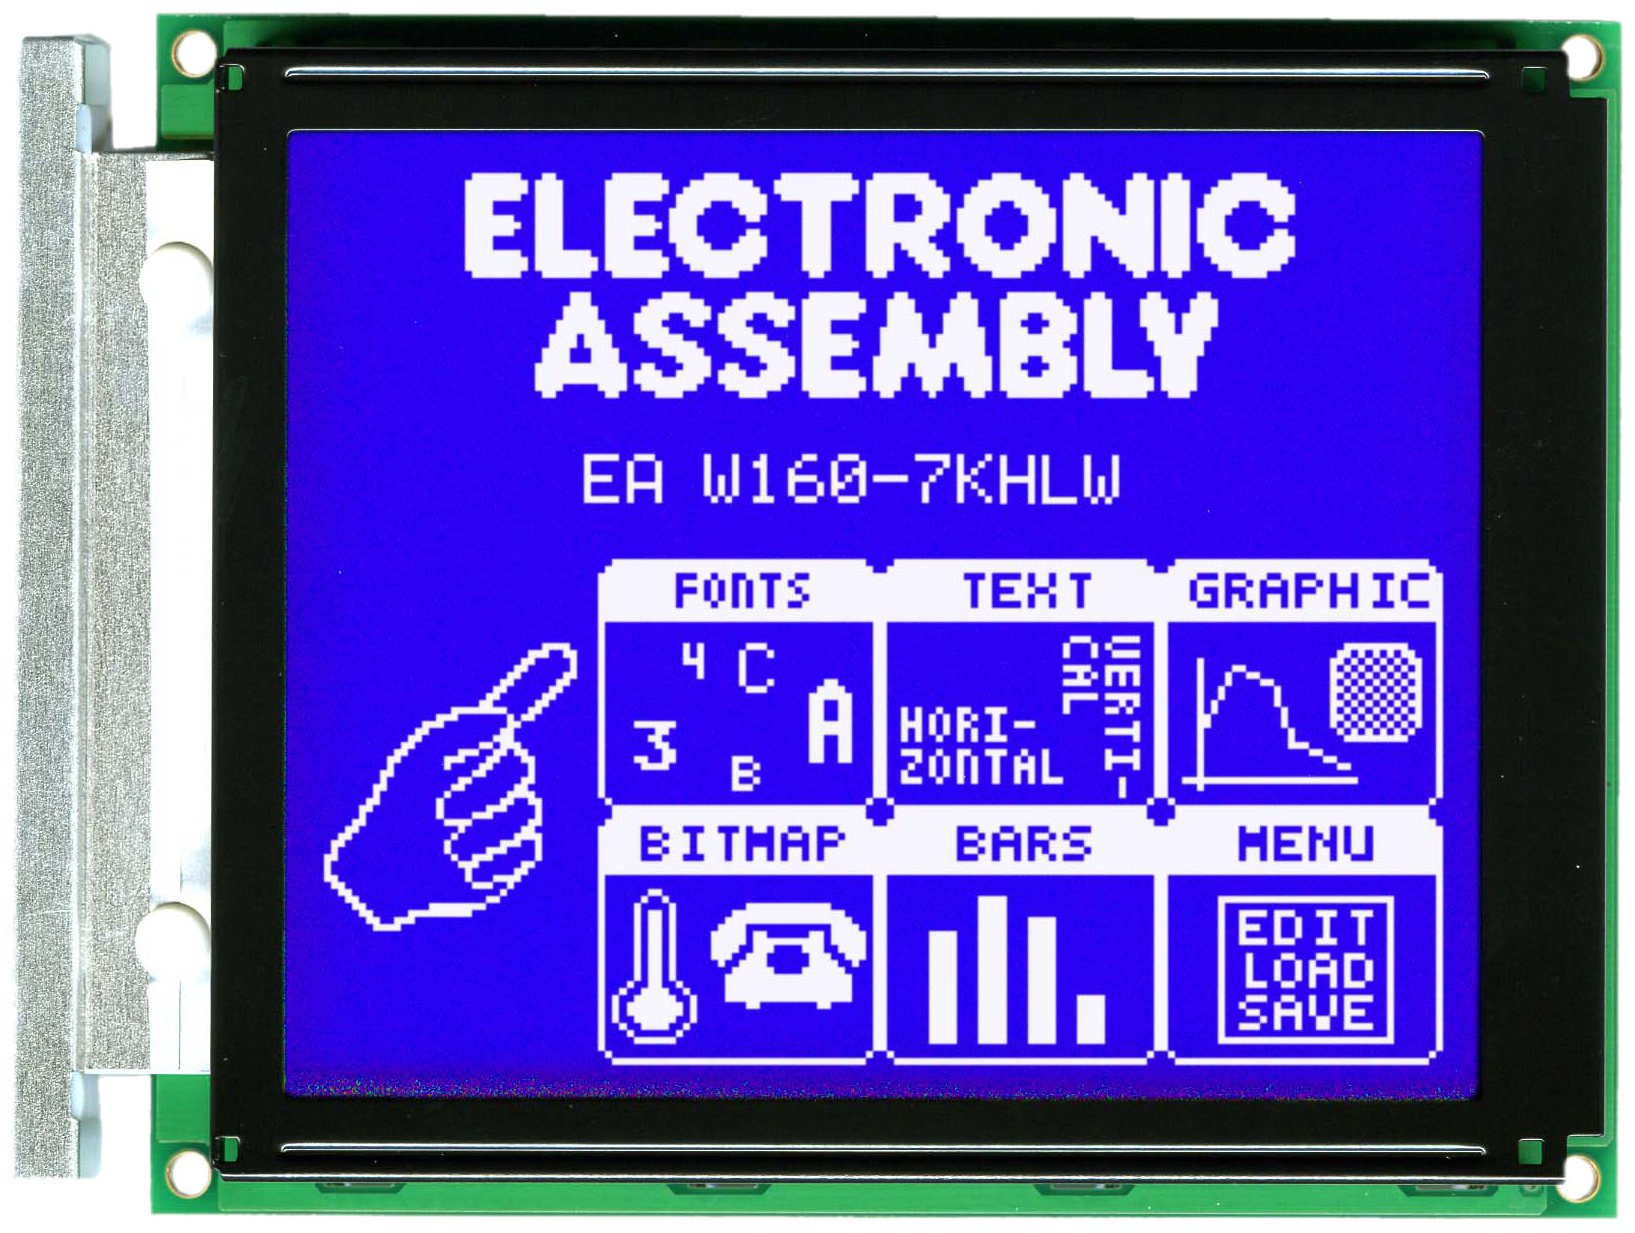 160x128 Graphic Display Blue/White CFL EA W160-7KHLWTP + Touch